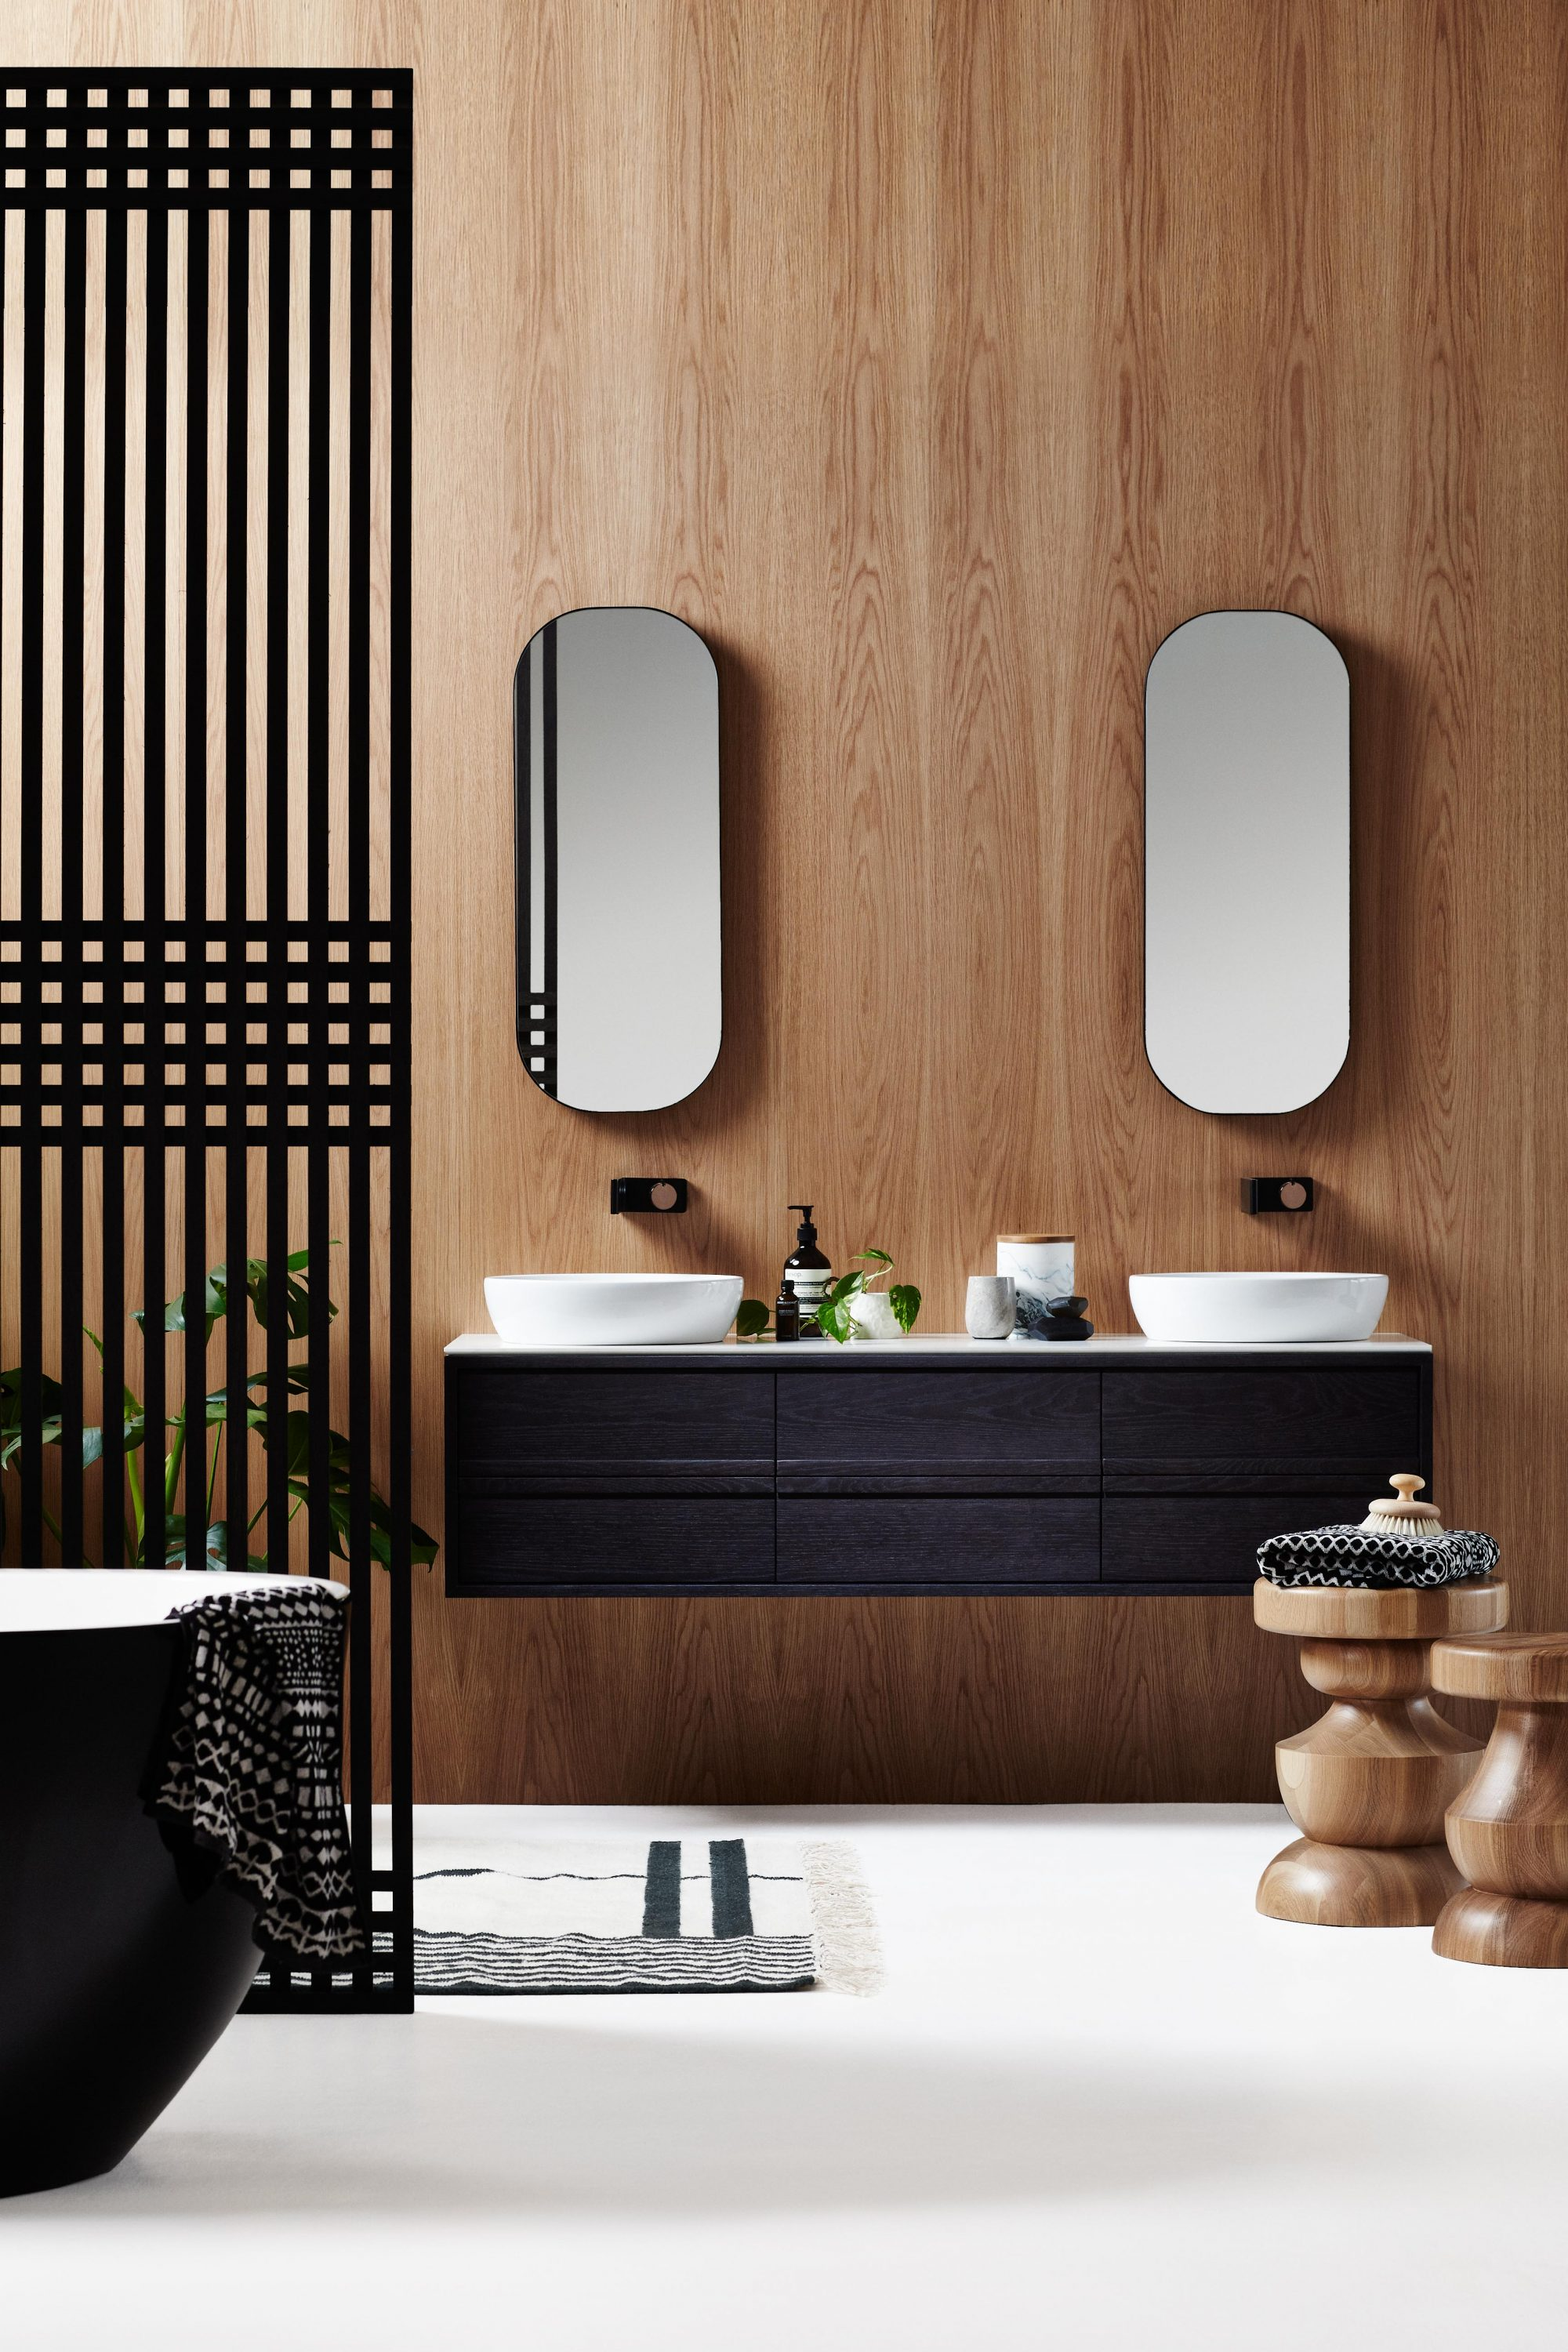 Hotel luxe at home with ISSY by Zuster bathroom furniture - The